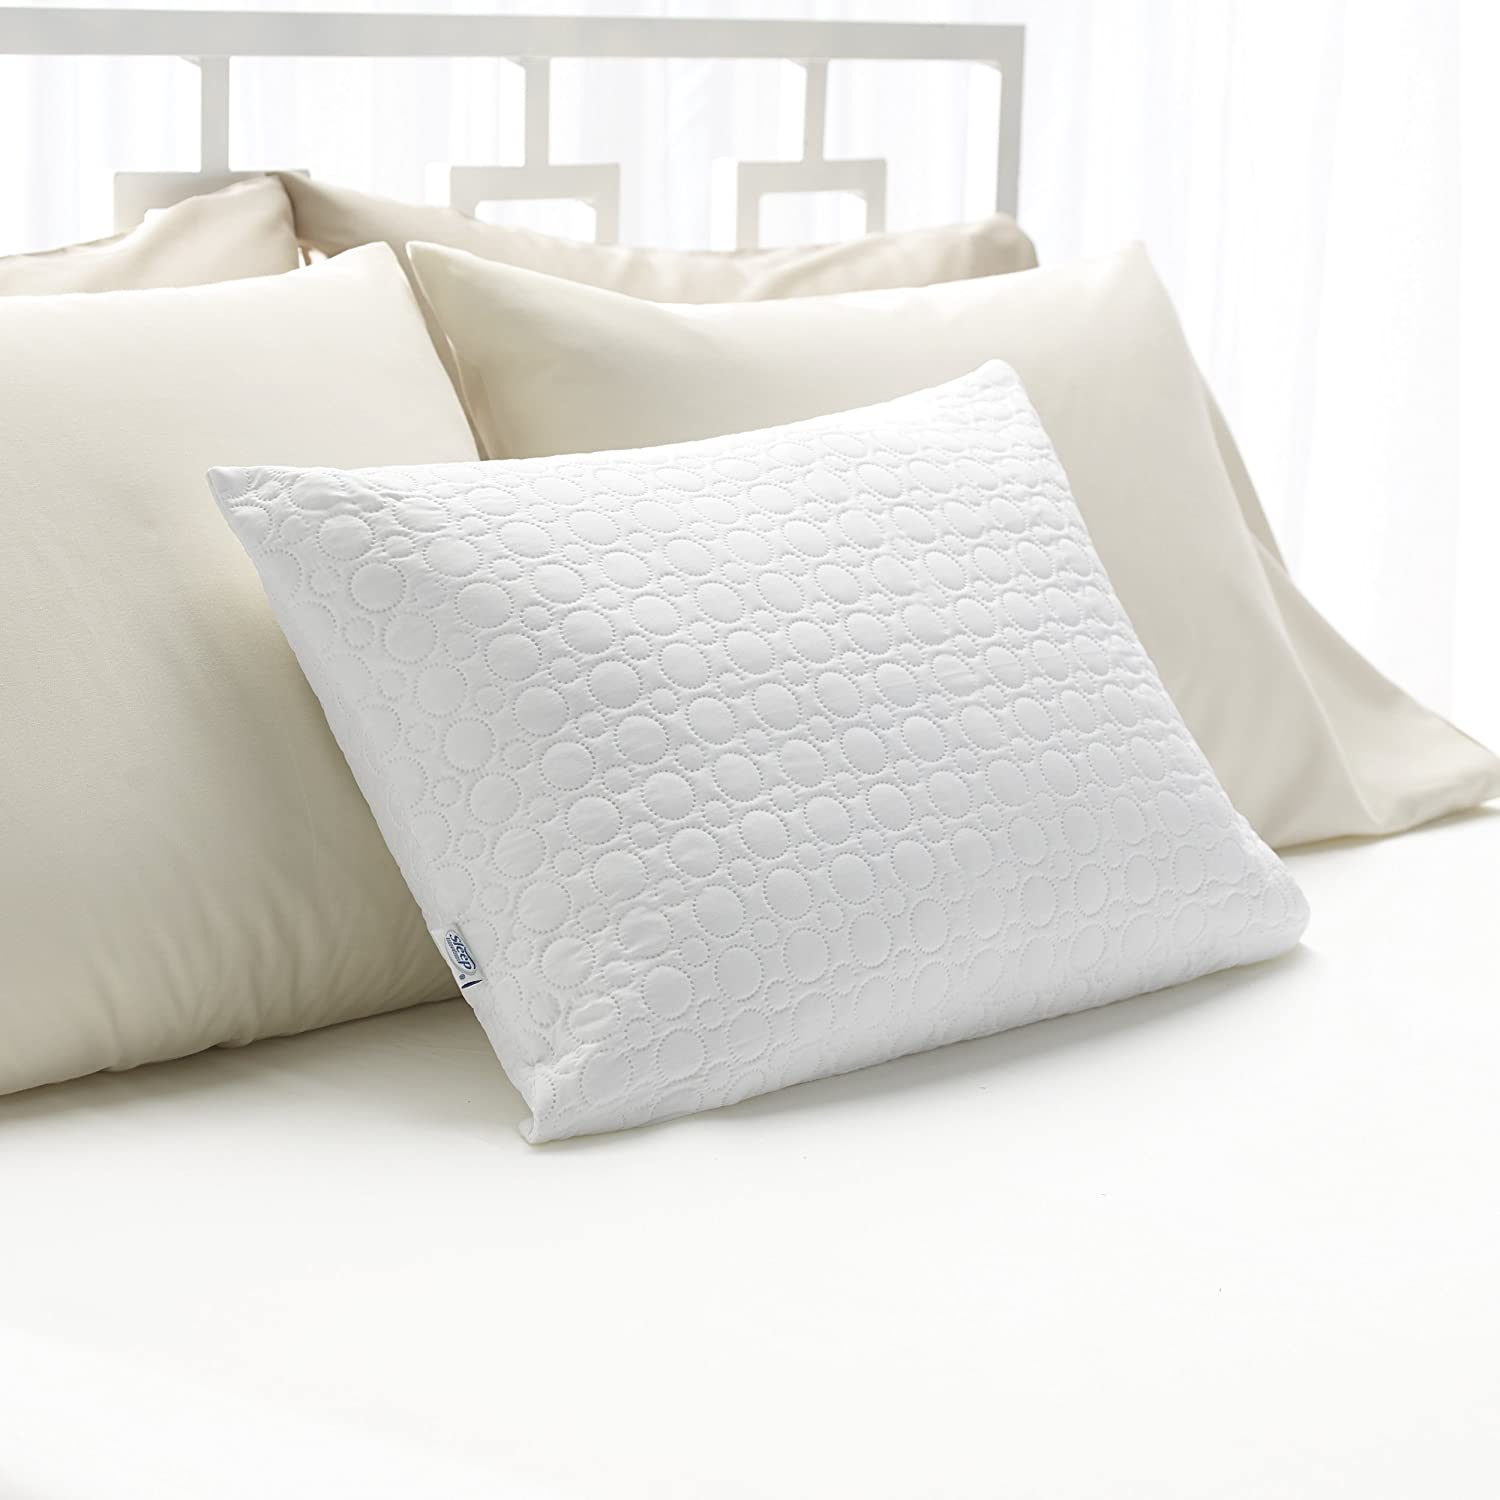 sleep innovations classic memory foam pillow standard size breathable knit cover 5 year warranty